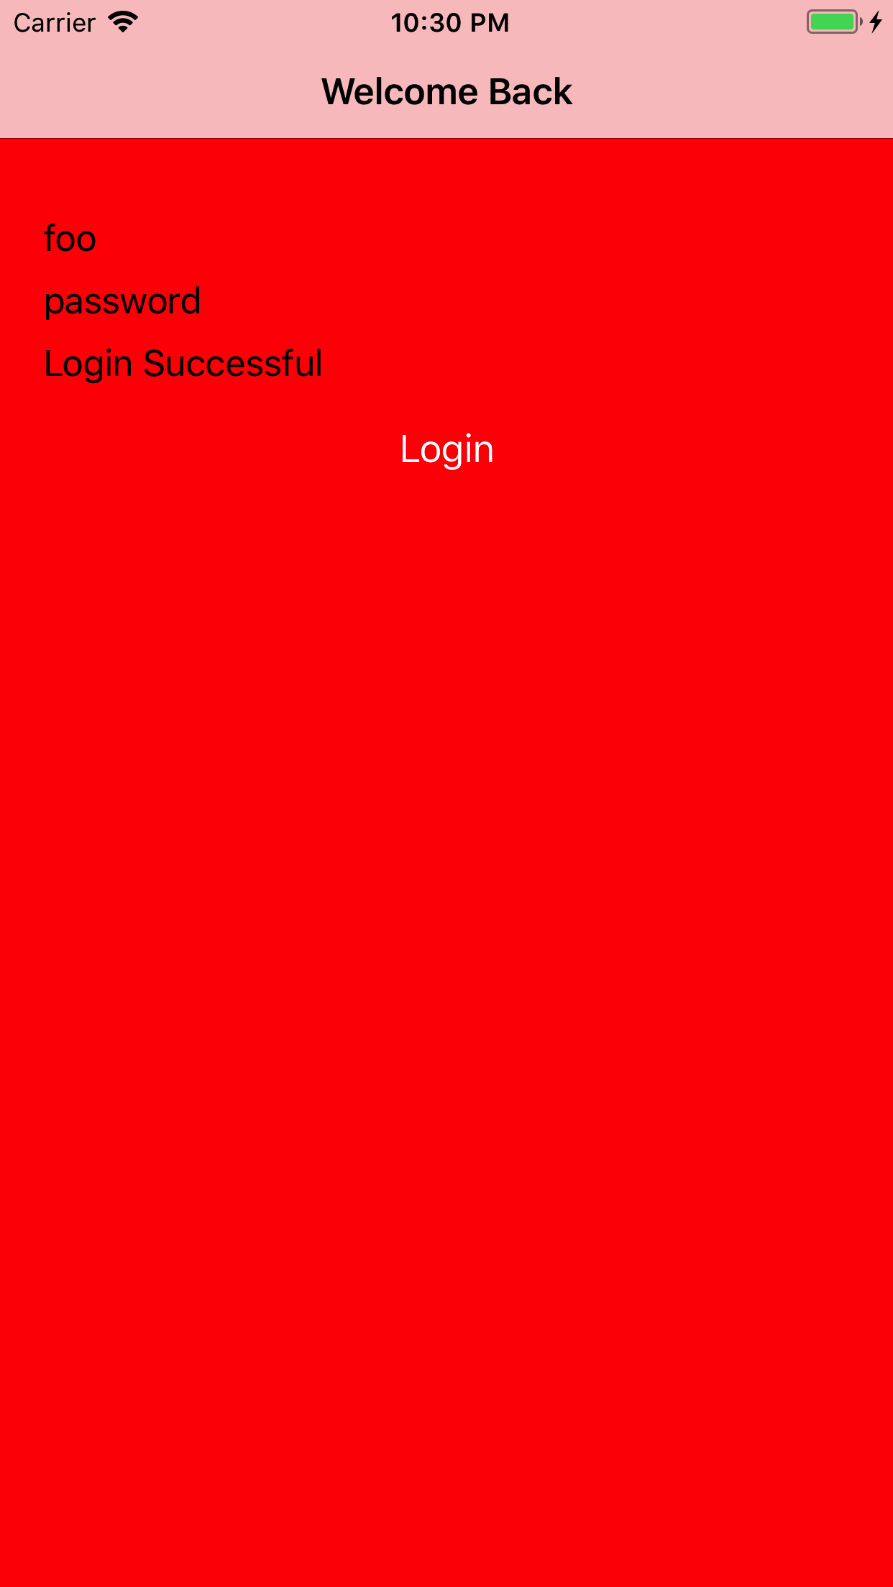 login_success_state